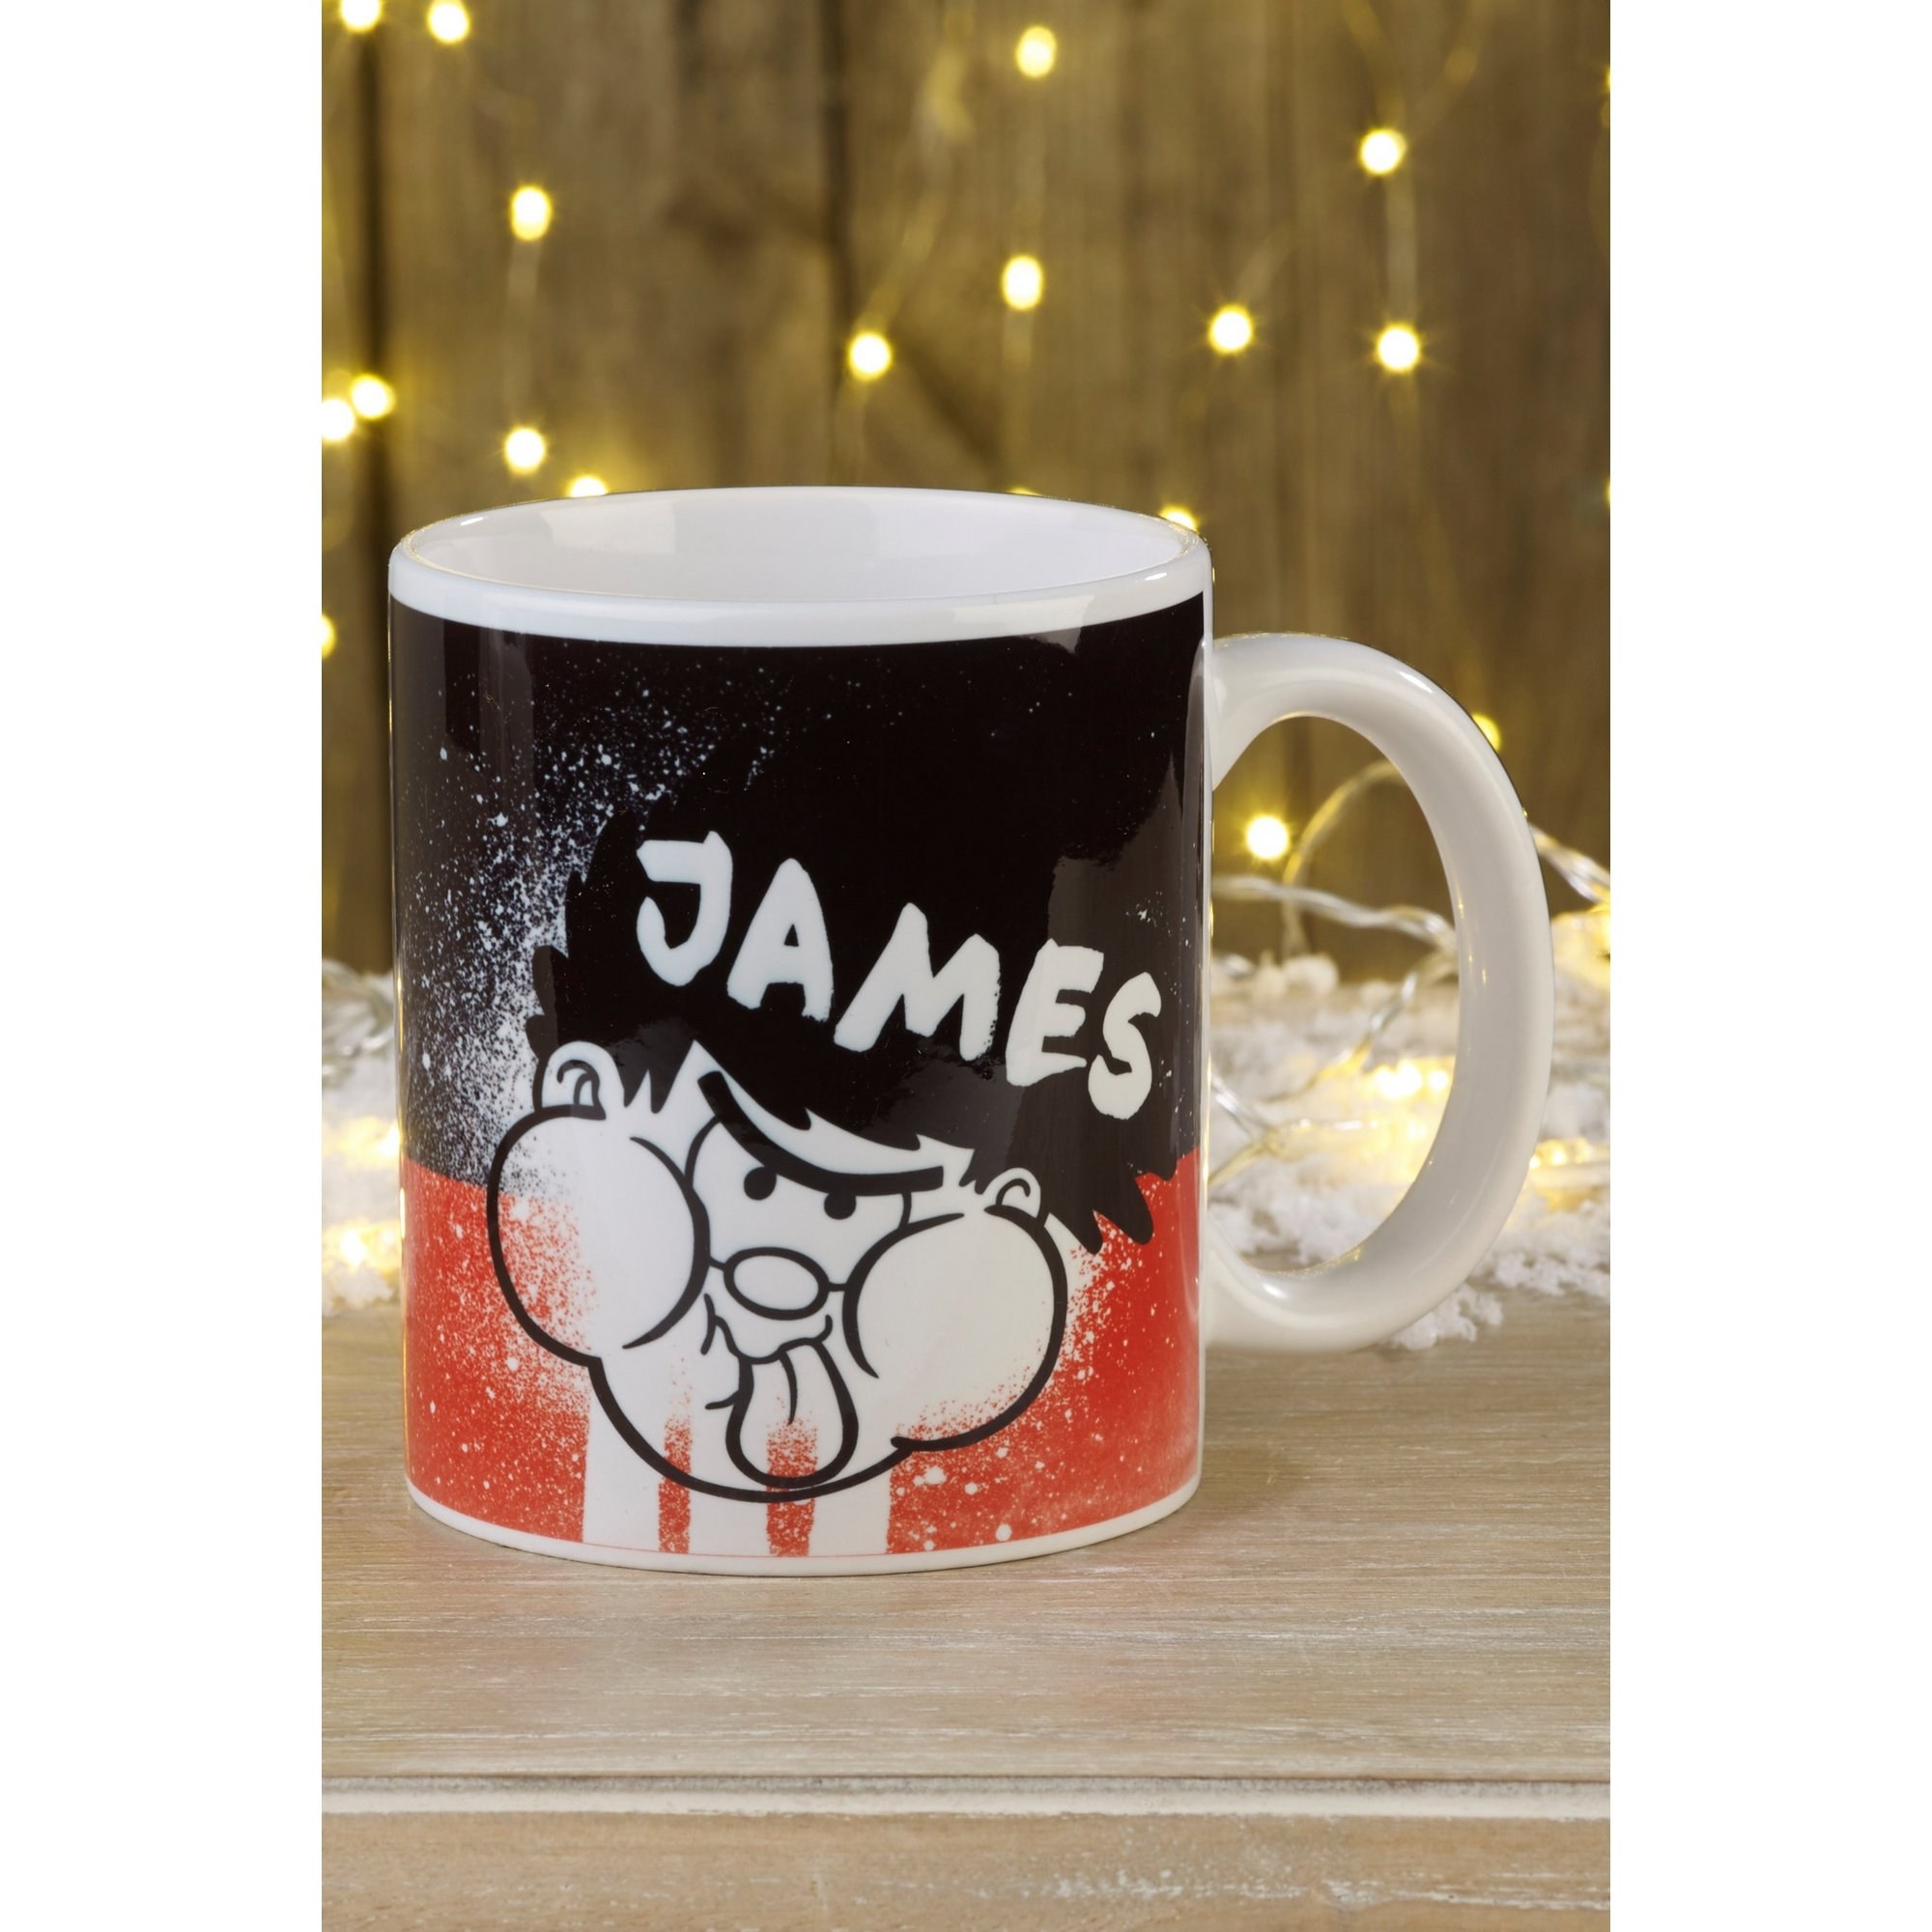 Image of Personalised Beano Mug - Dennis The Menace